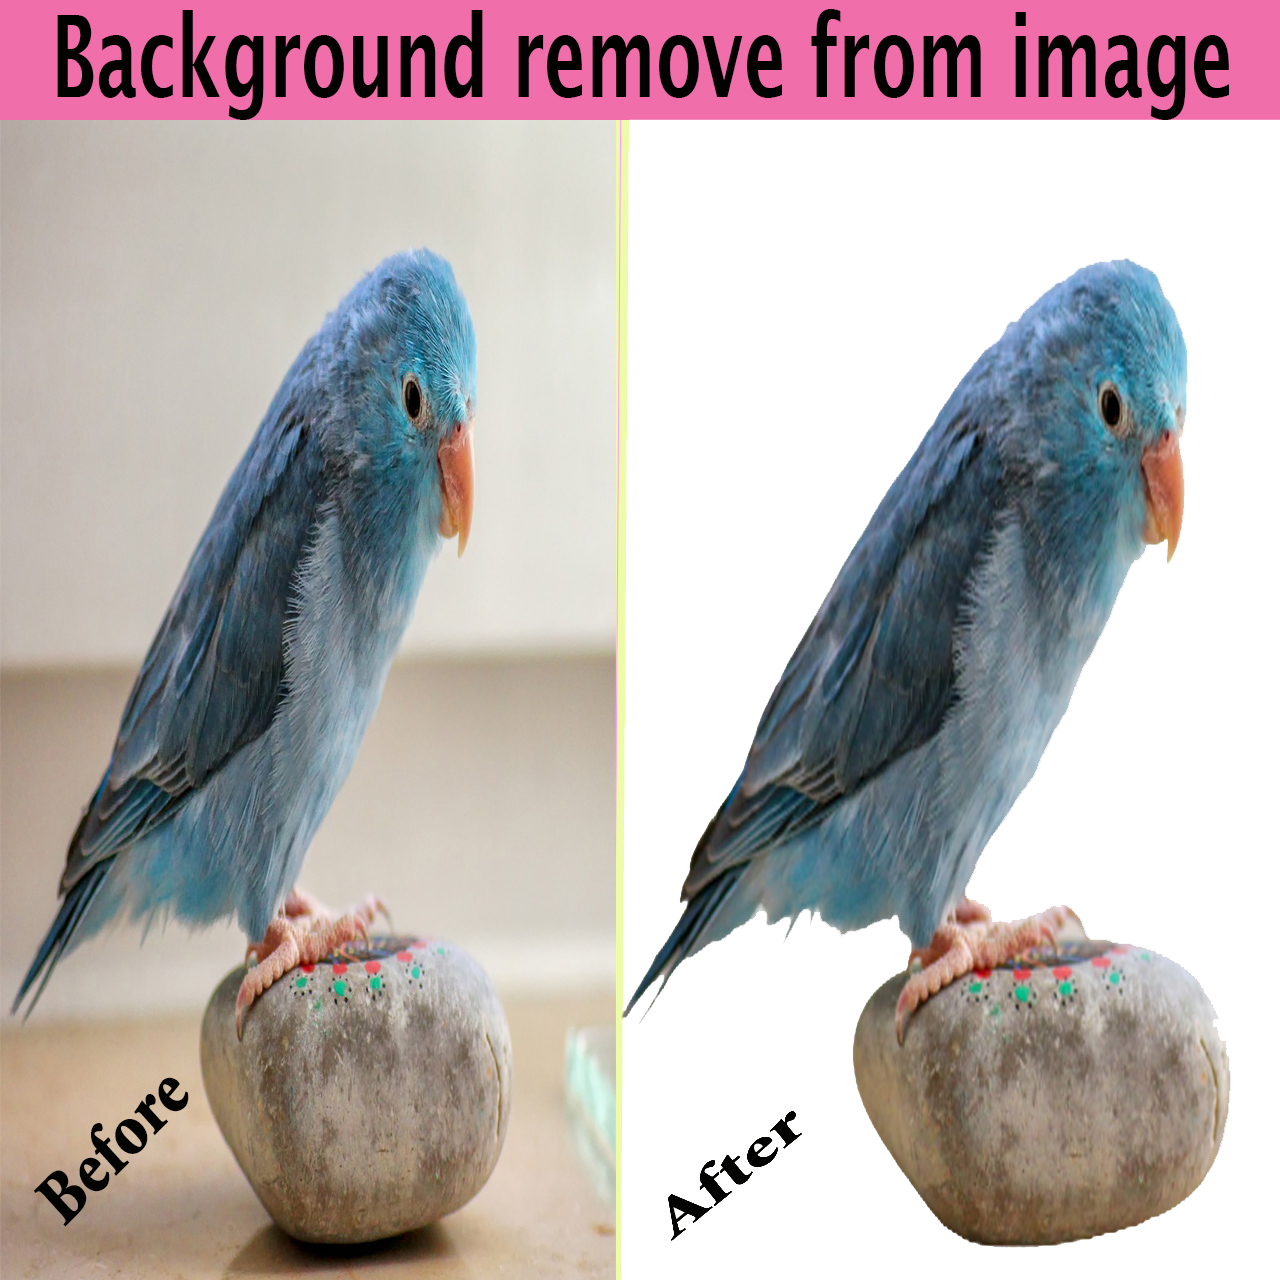 Provide background remove from images